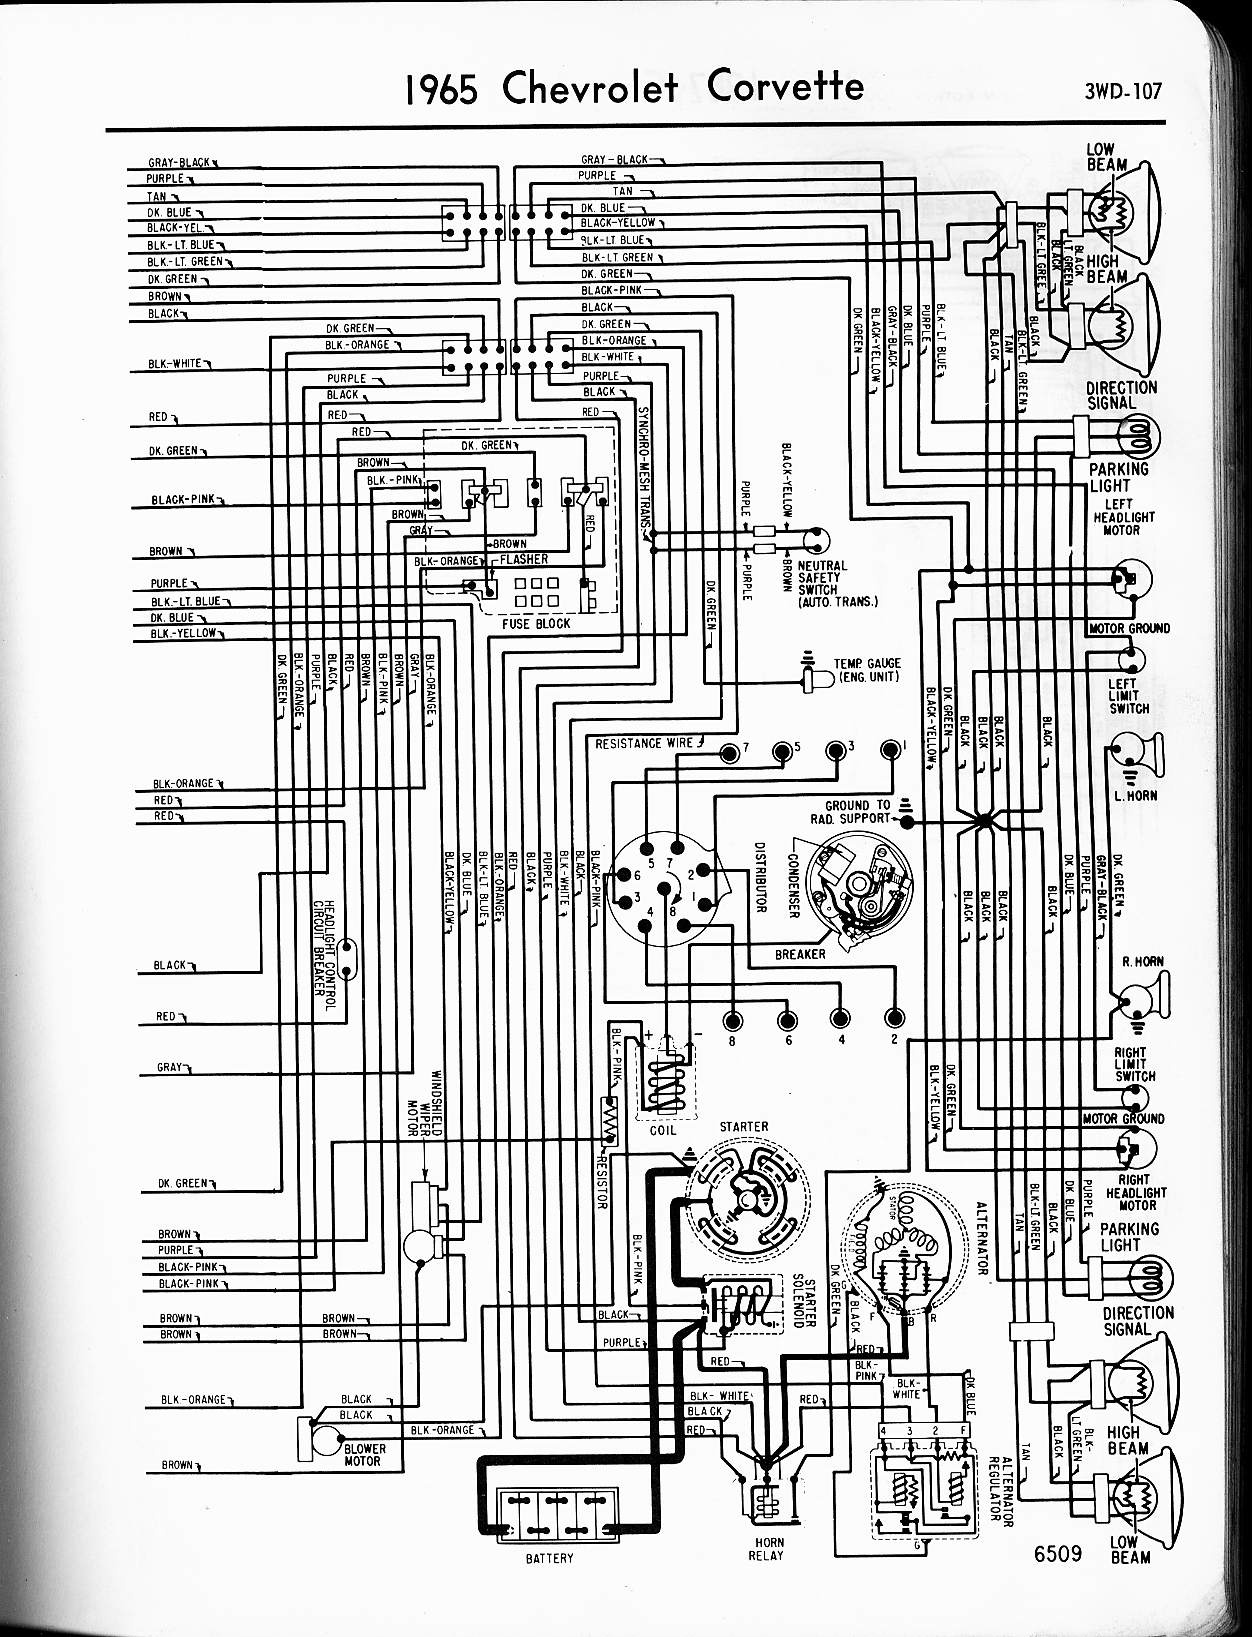 1966 chevy c10 wiring diagram free 1966 chevy truck wiring diagram 1966 Chevy Truck Wiring Diagram 1967 chevy c10 headlight wiring on 1967 images free download 1966 chevy c10 wiring diagram 1967 1966 chevy truck wiring diagram